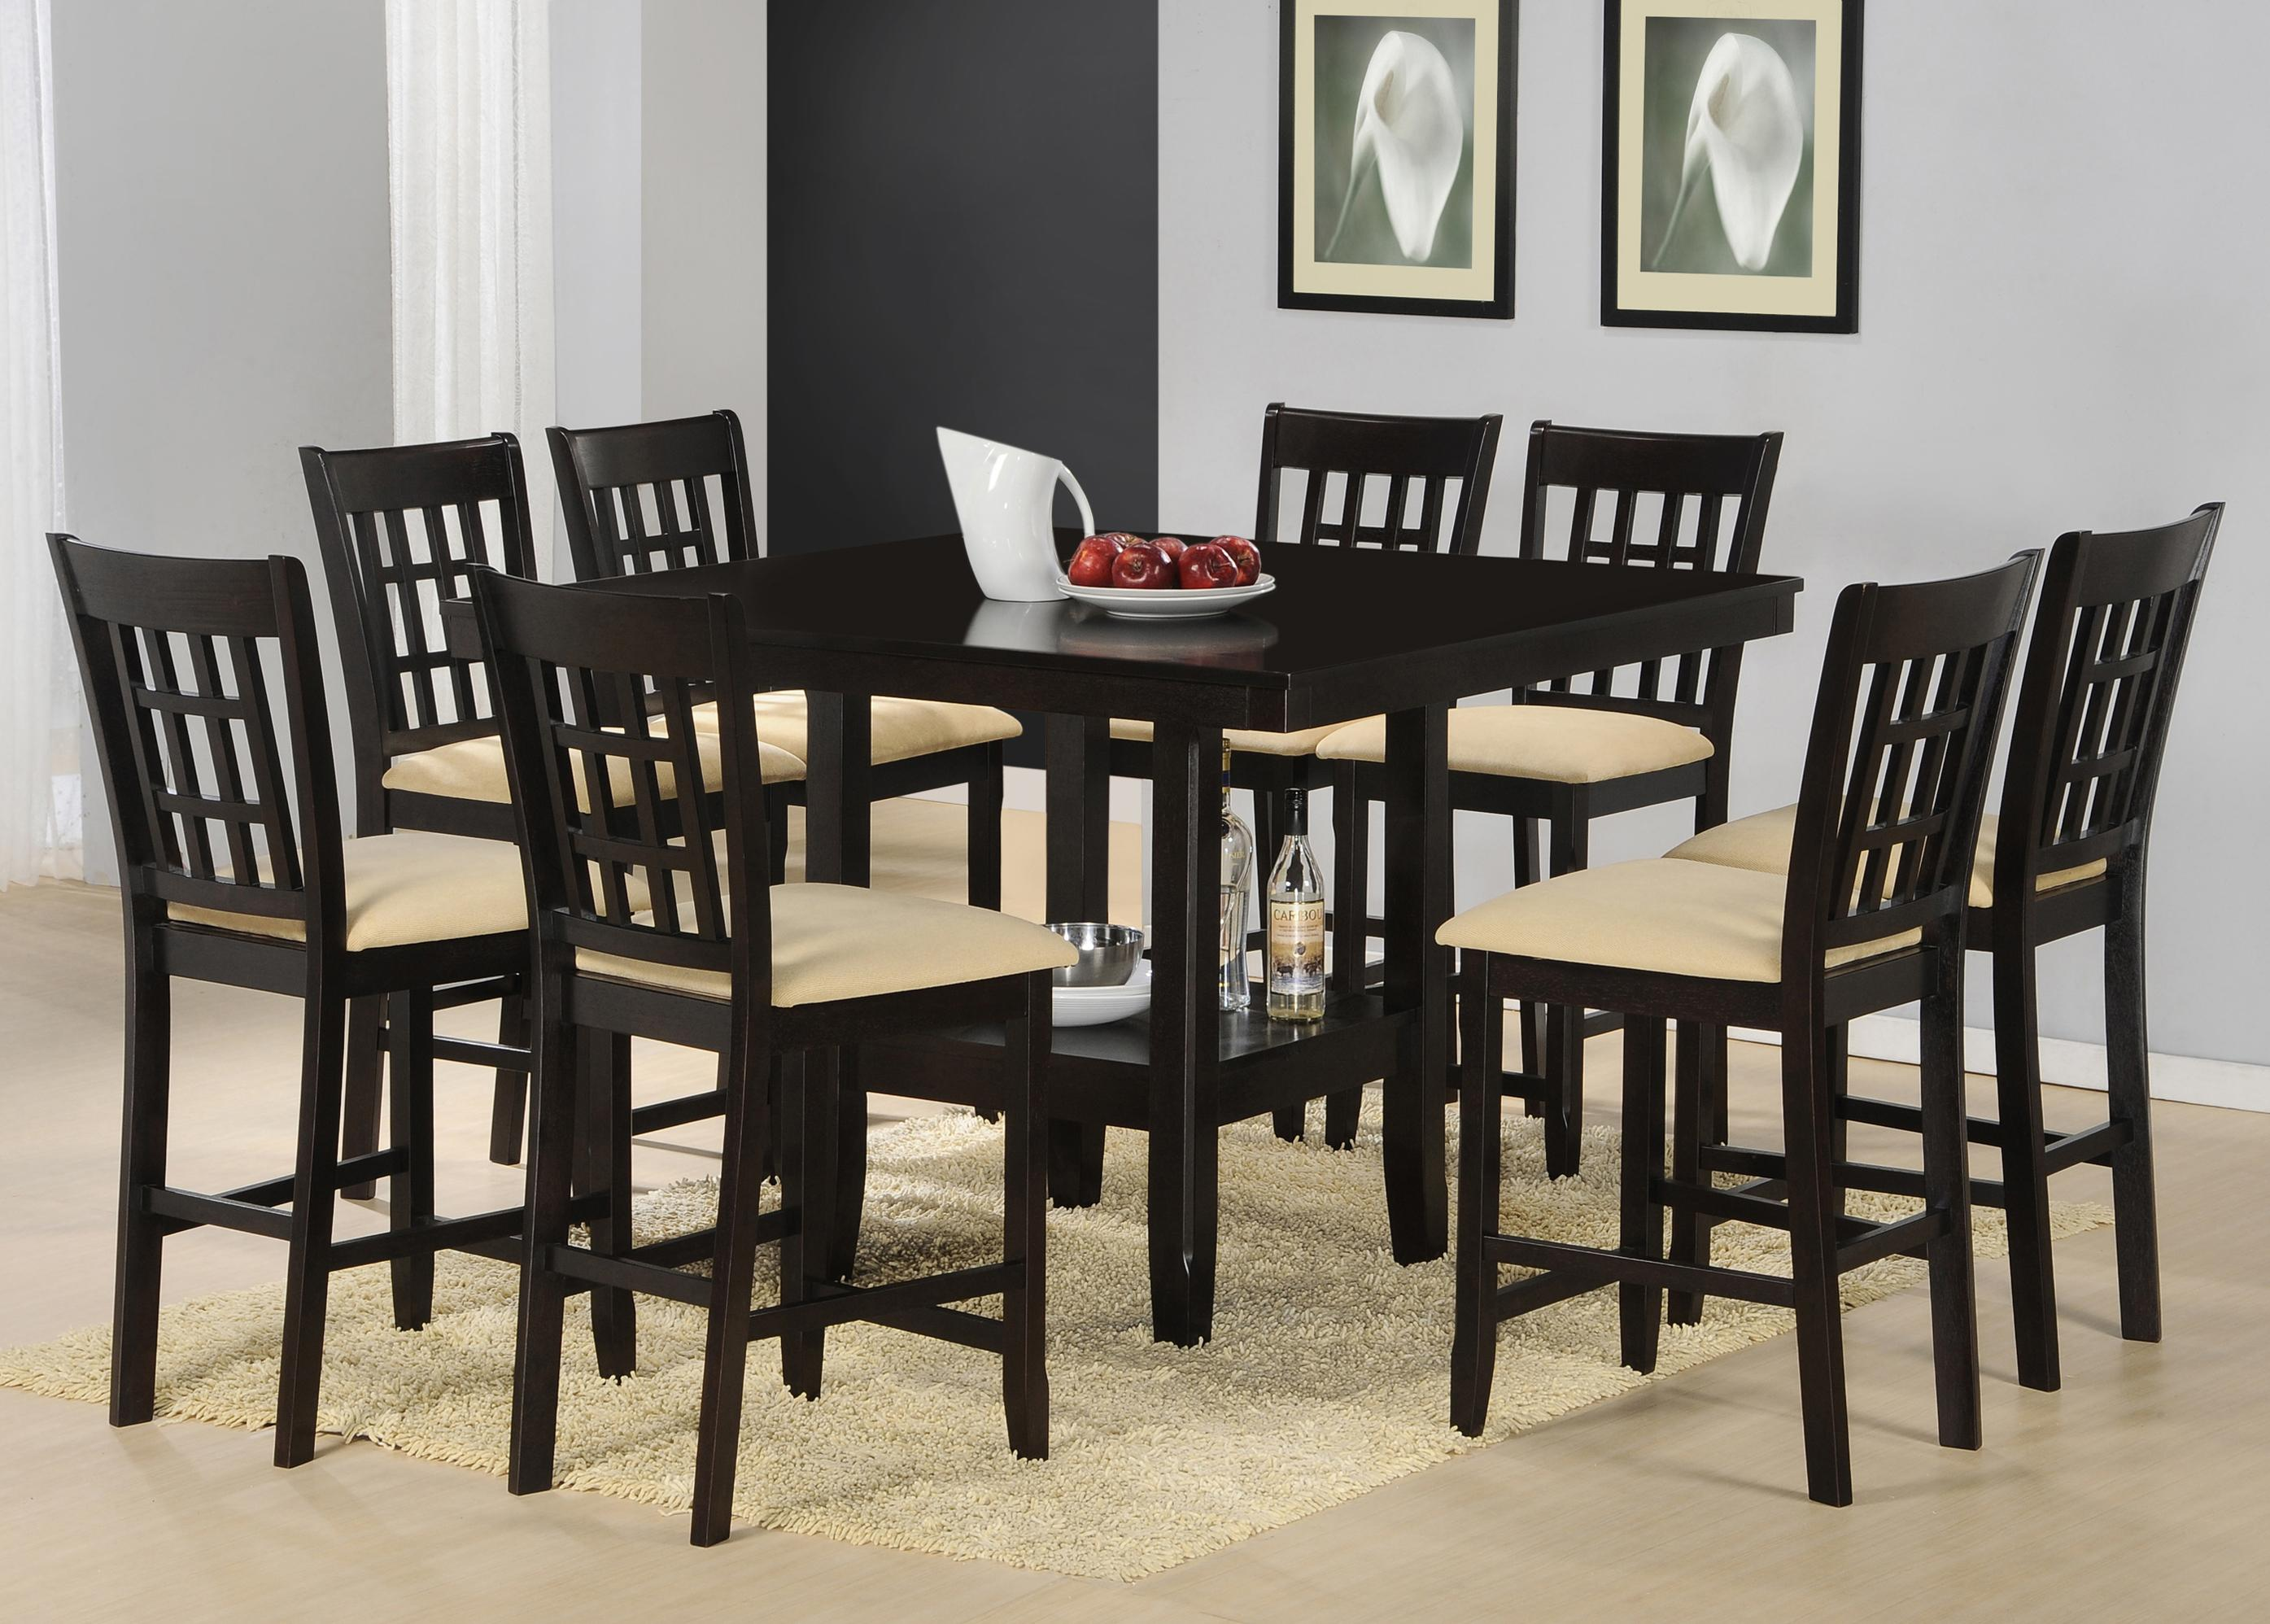 9 Piece Counter Height Gathering Table W/ Wine Rack Dining Set